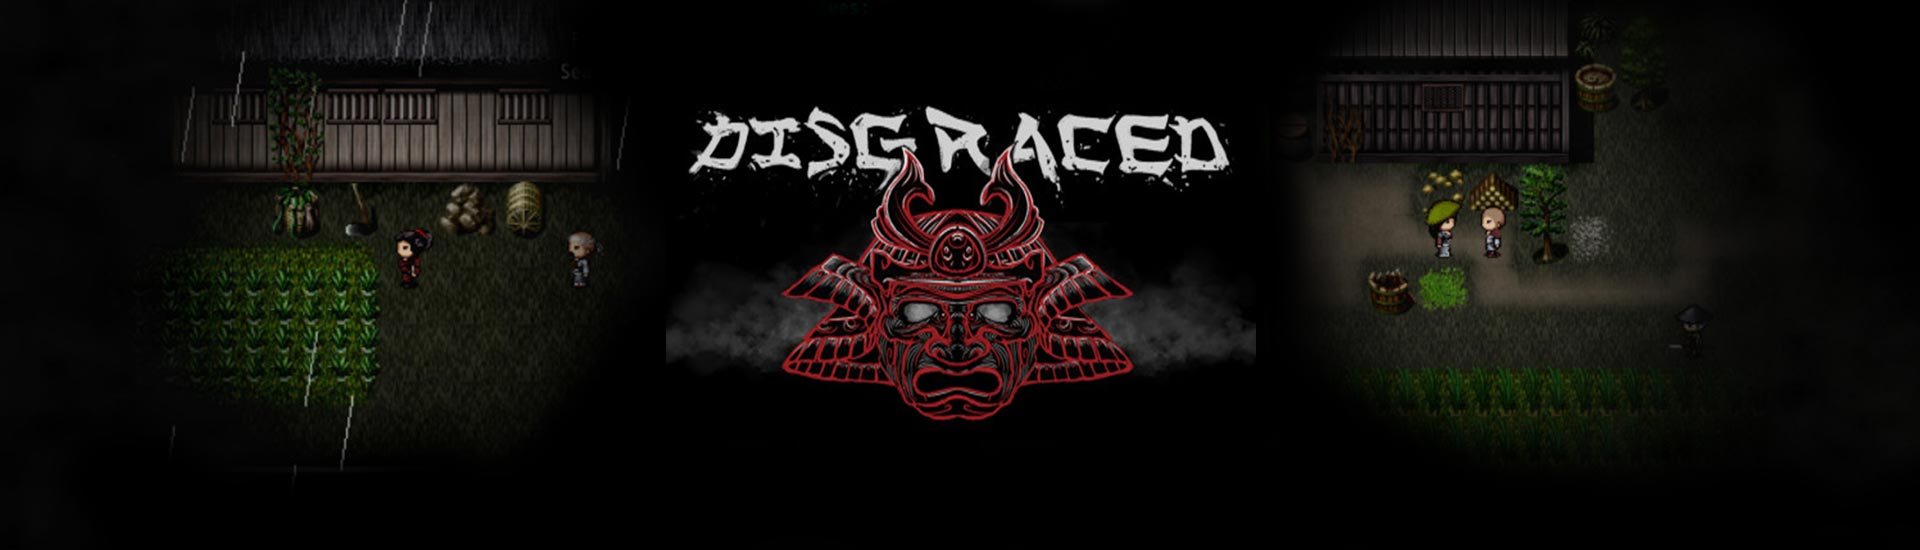 Disgraced cover